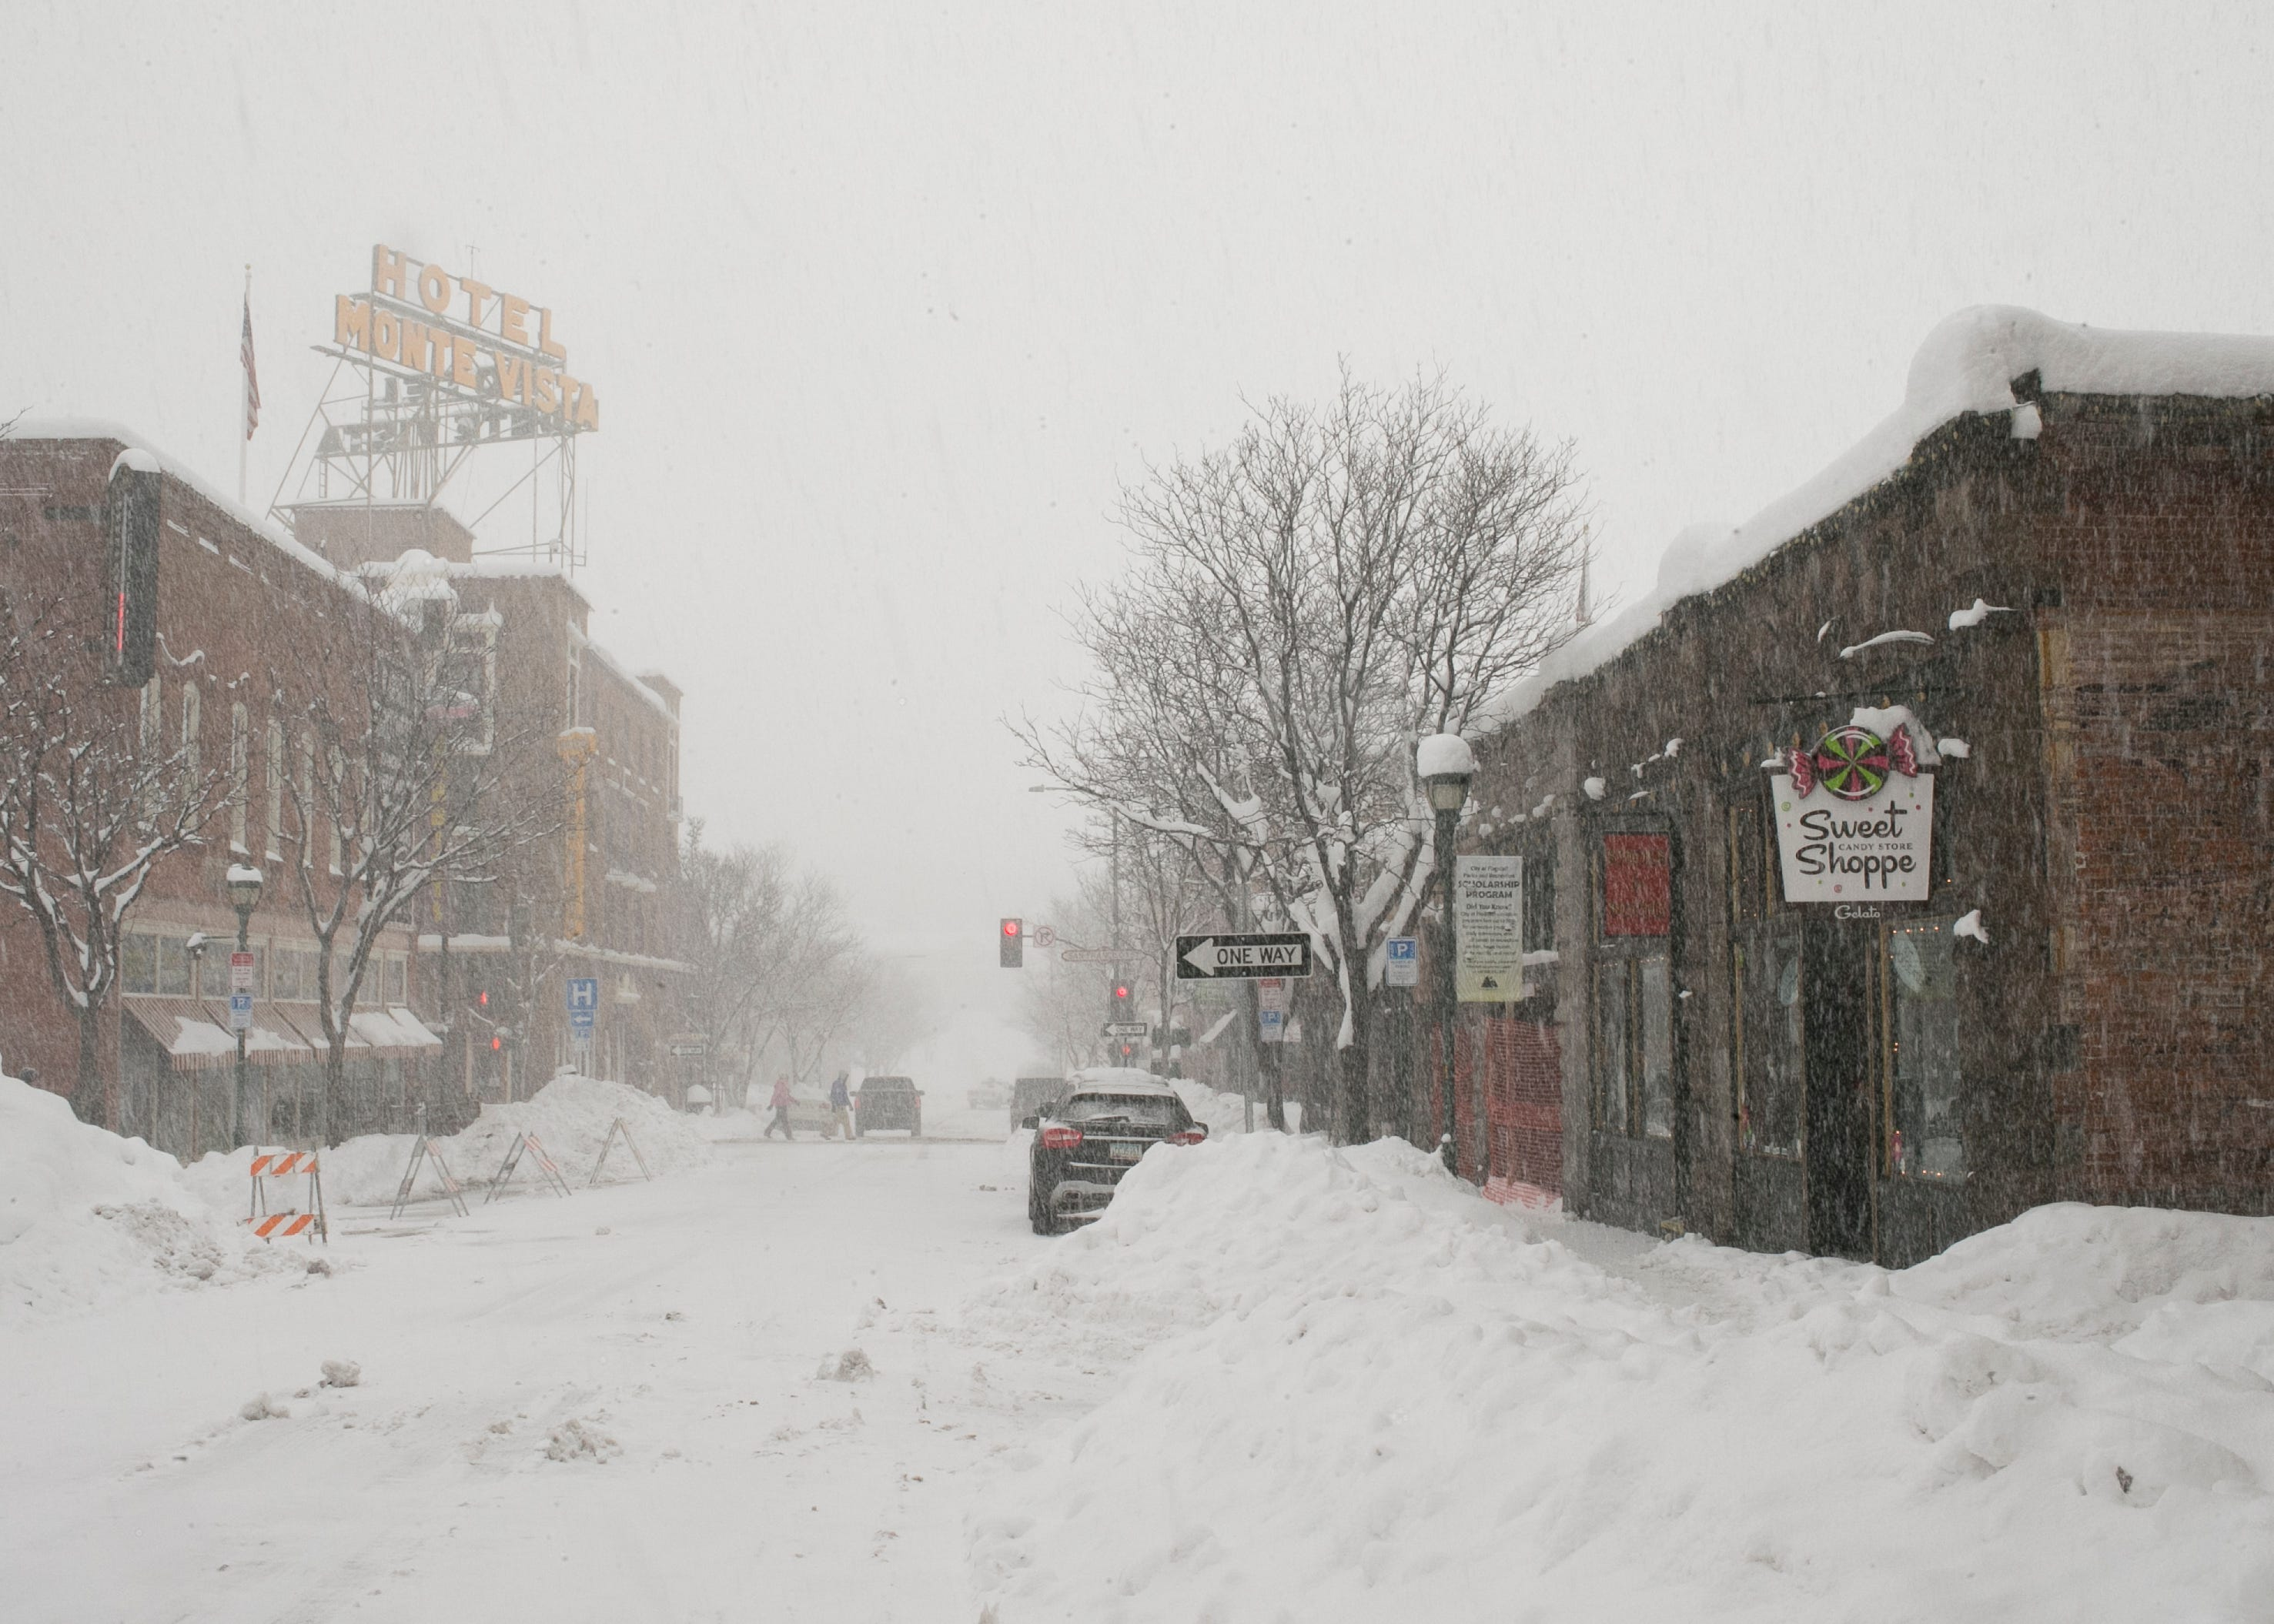 Flagstaff shatters all-time daily snowfall record with more than 31 inches | Arizona Central